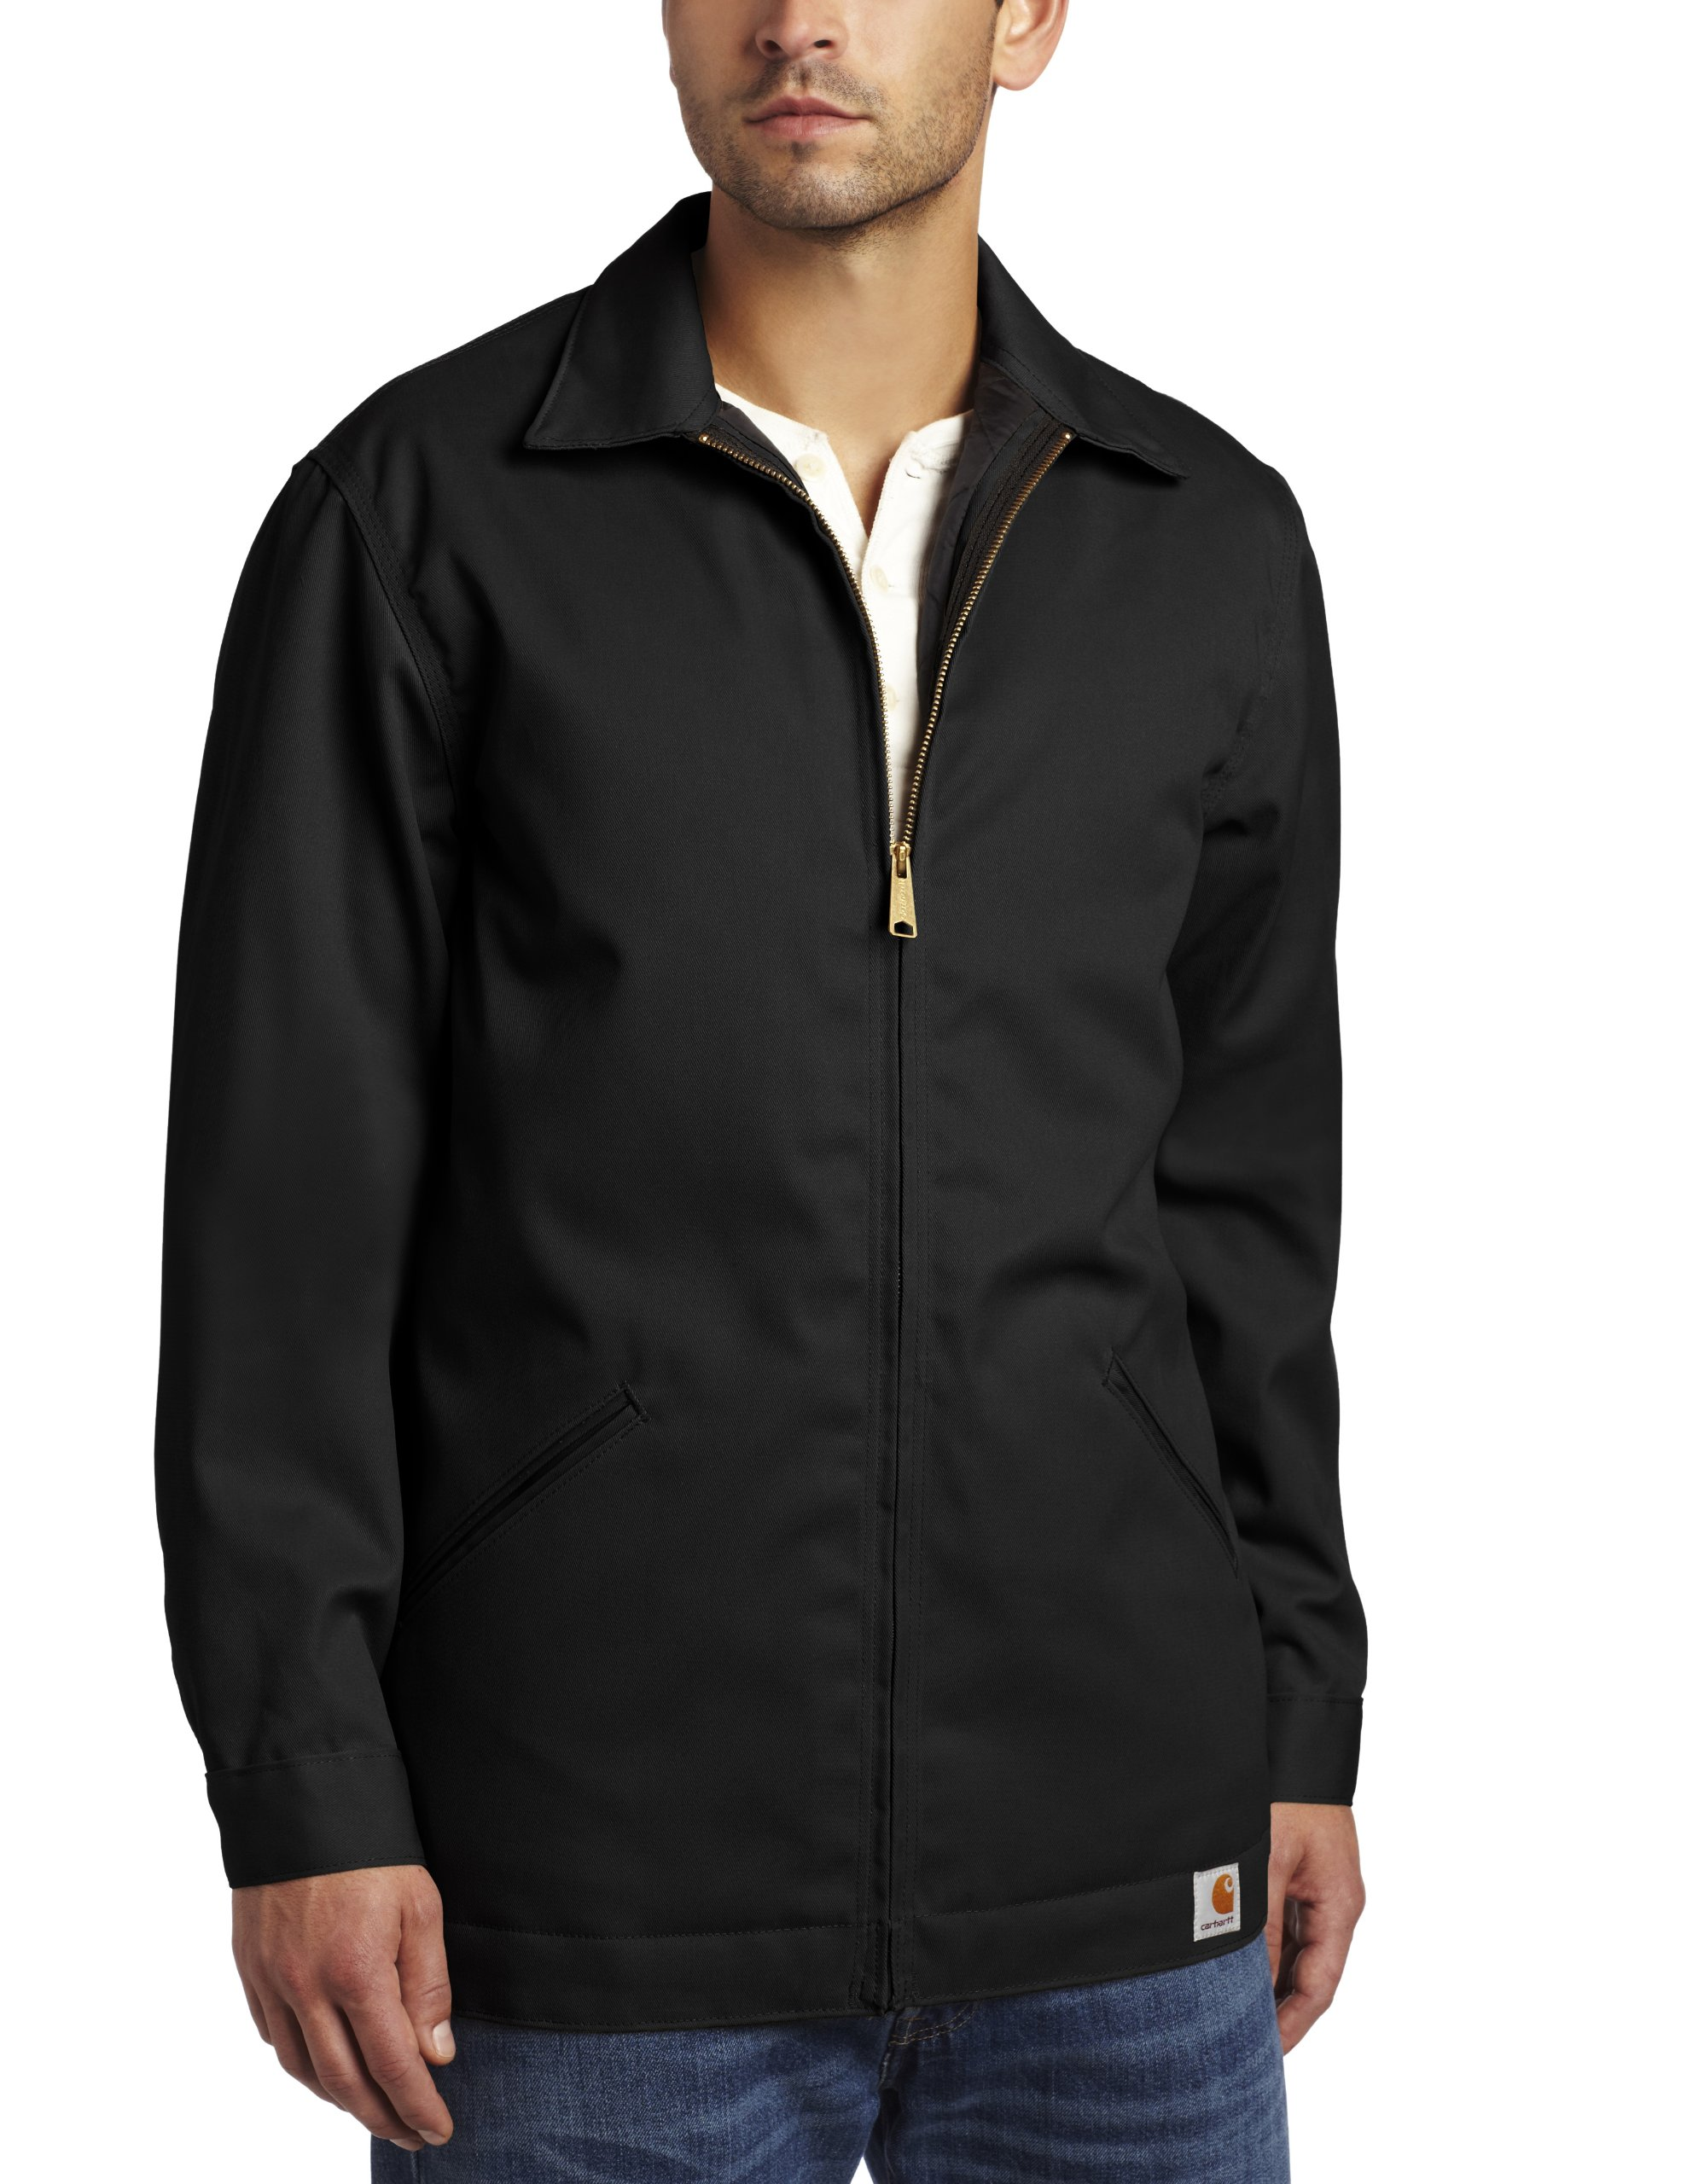 Carhartt Men's Big & Tall Twill Work Jacket,Black,XXXX-Large